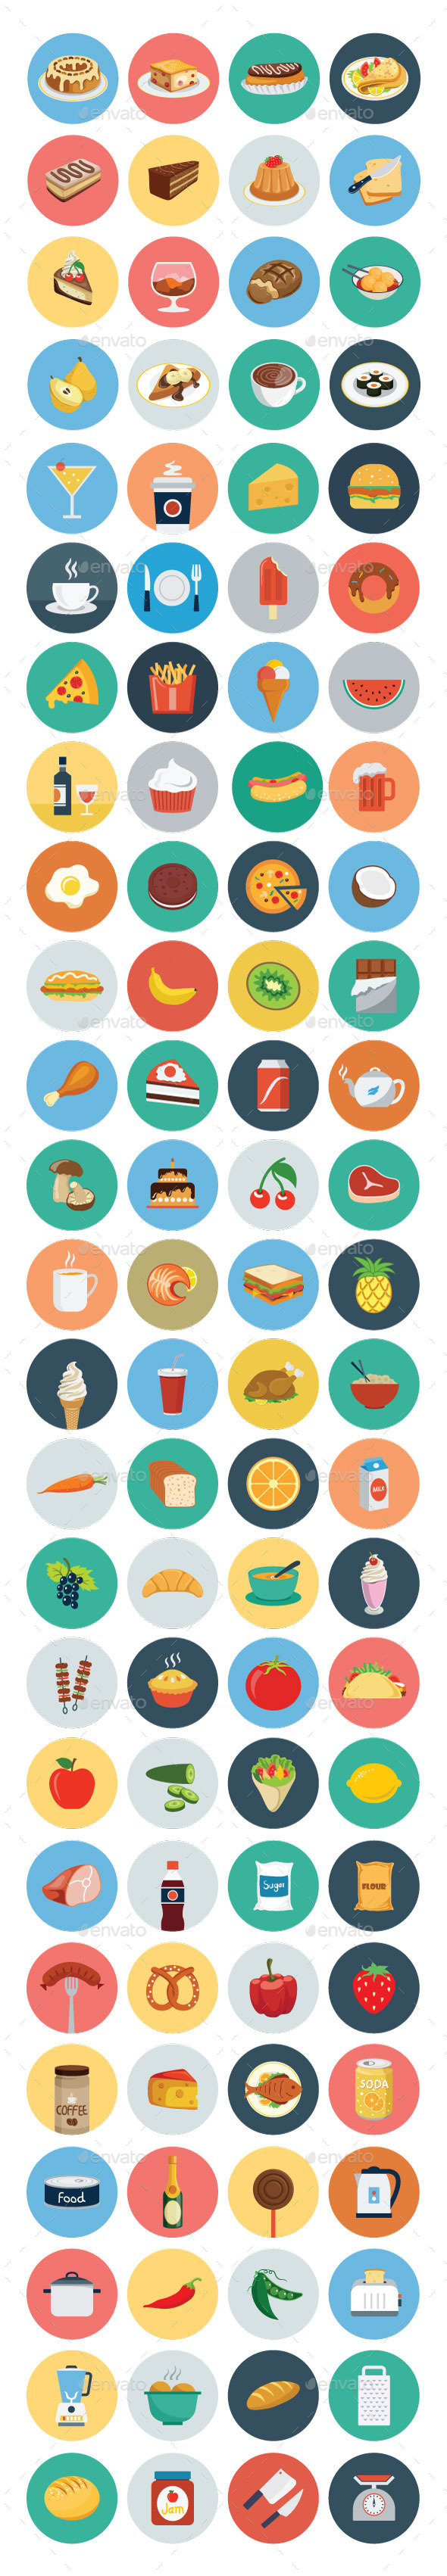 GraphicRiver 100 Food Flat Icons 10419023